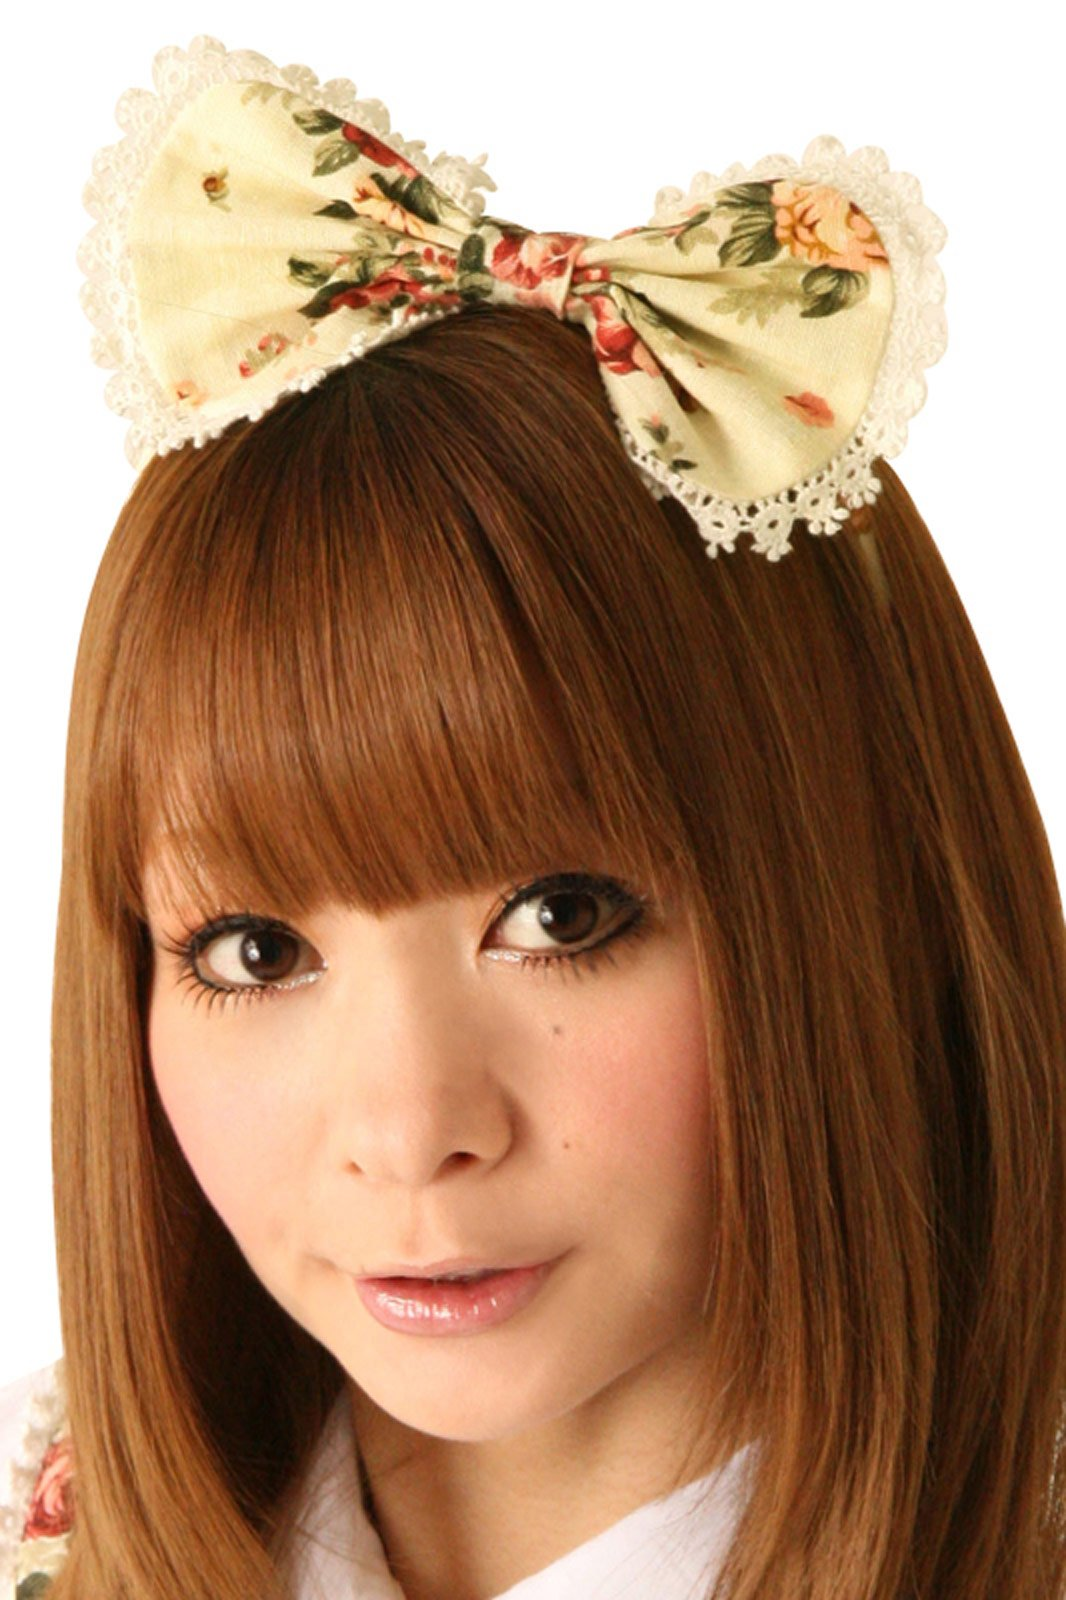 Cream Doll White Broom Hair Bow Headpiece